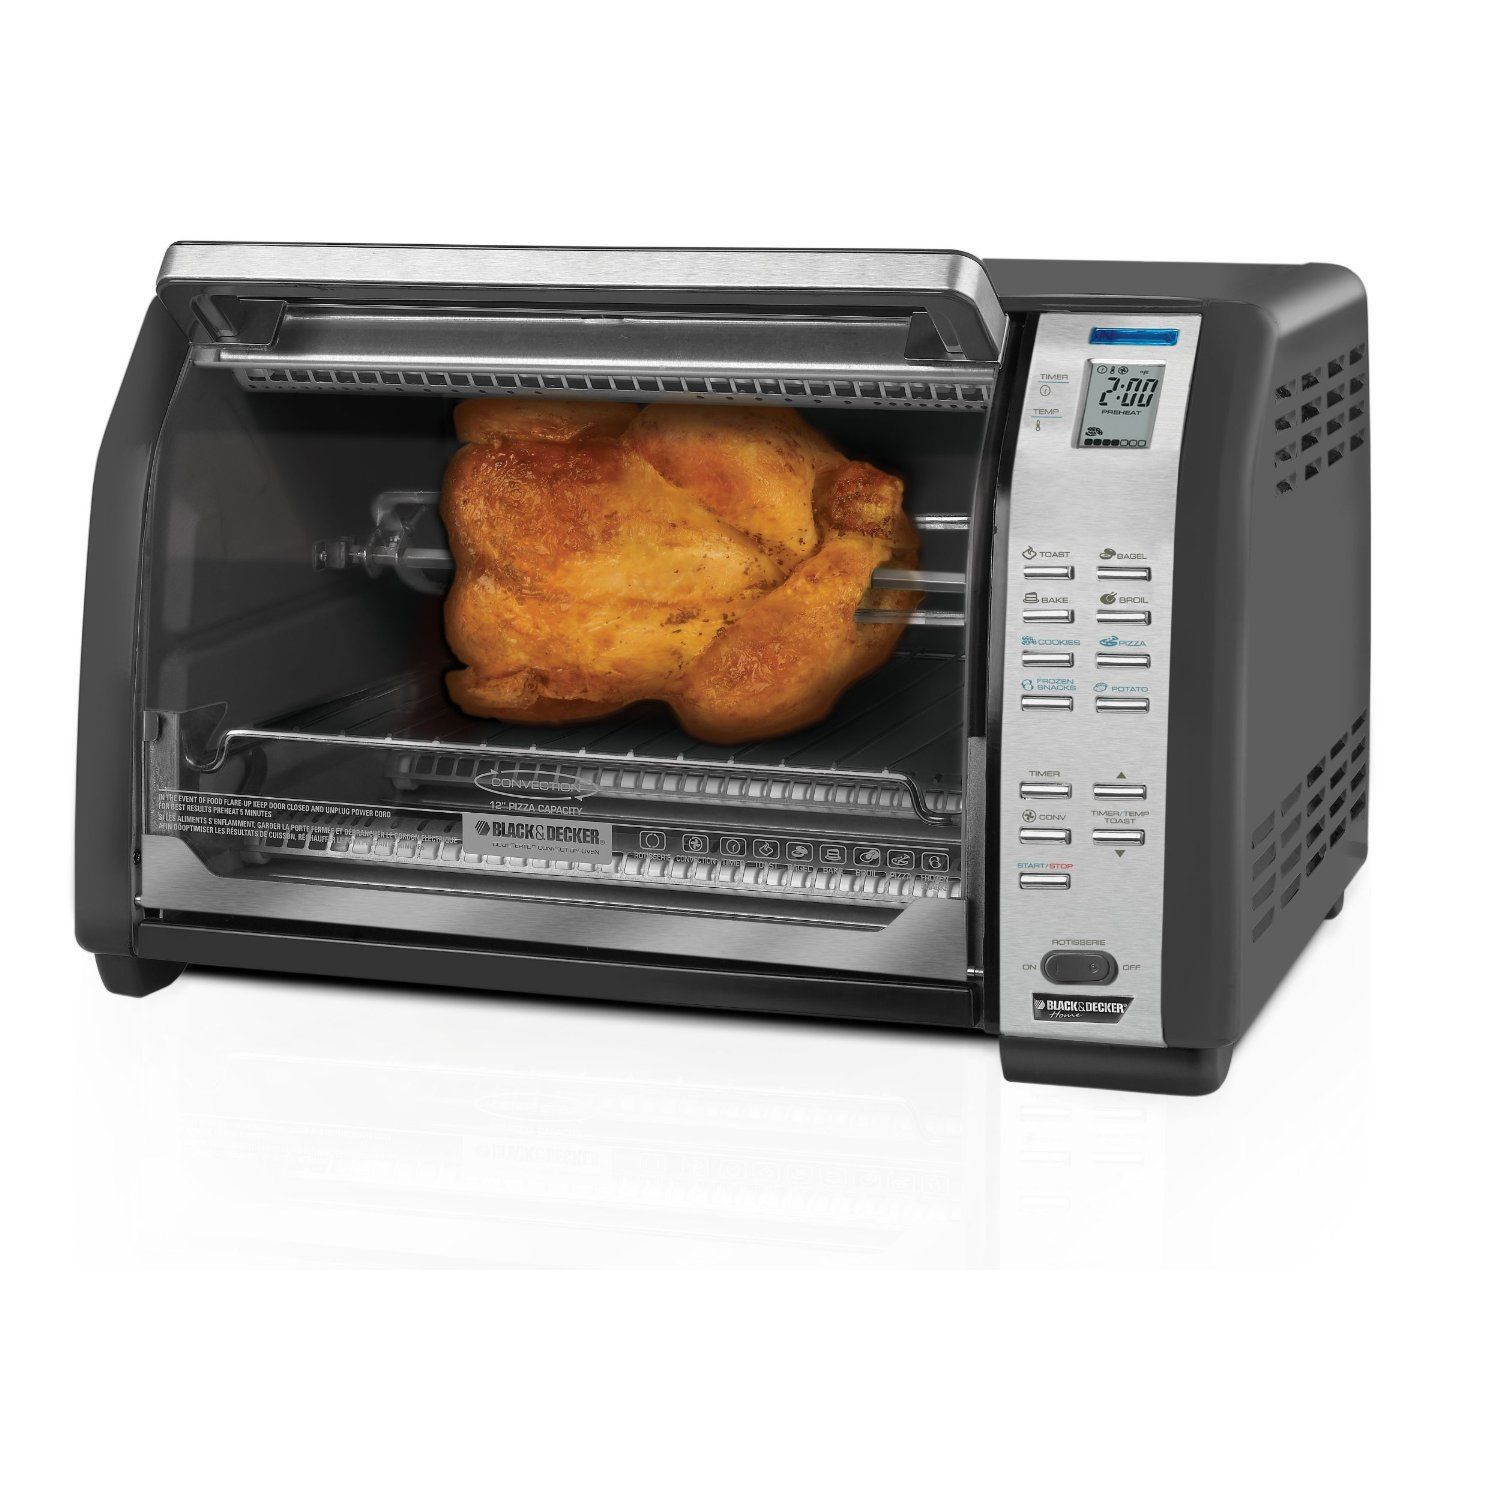 The Best Toaster Oven Reviews Toaster Oven Toaster Oven Reviews Convection Toaster Oven